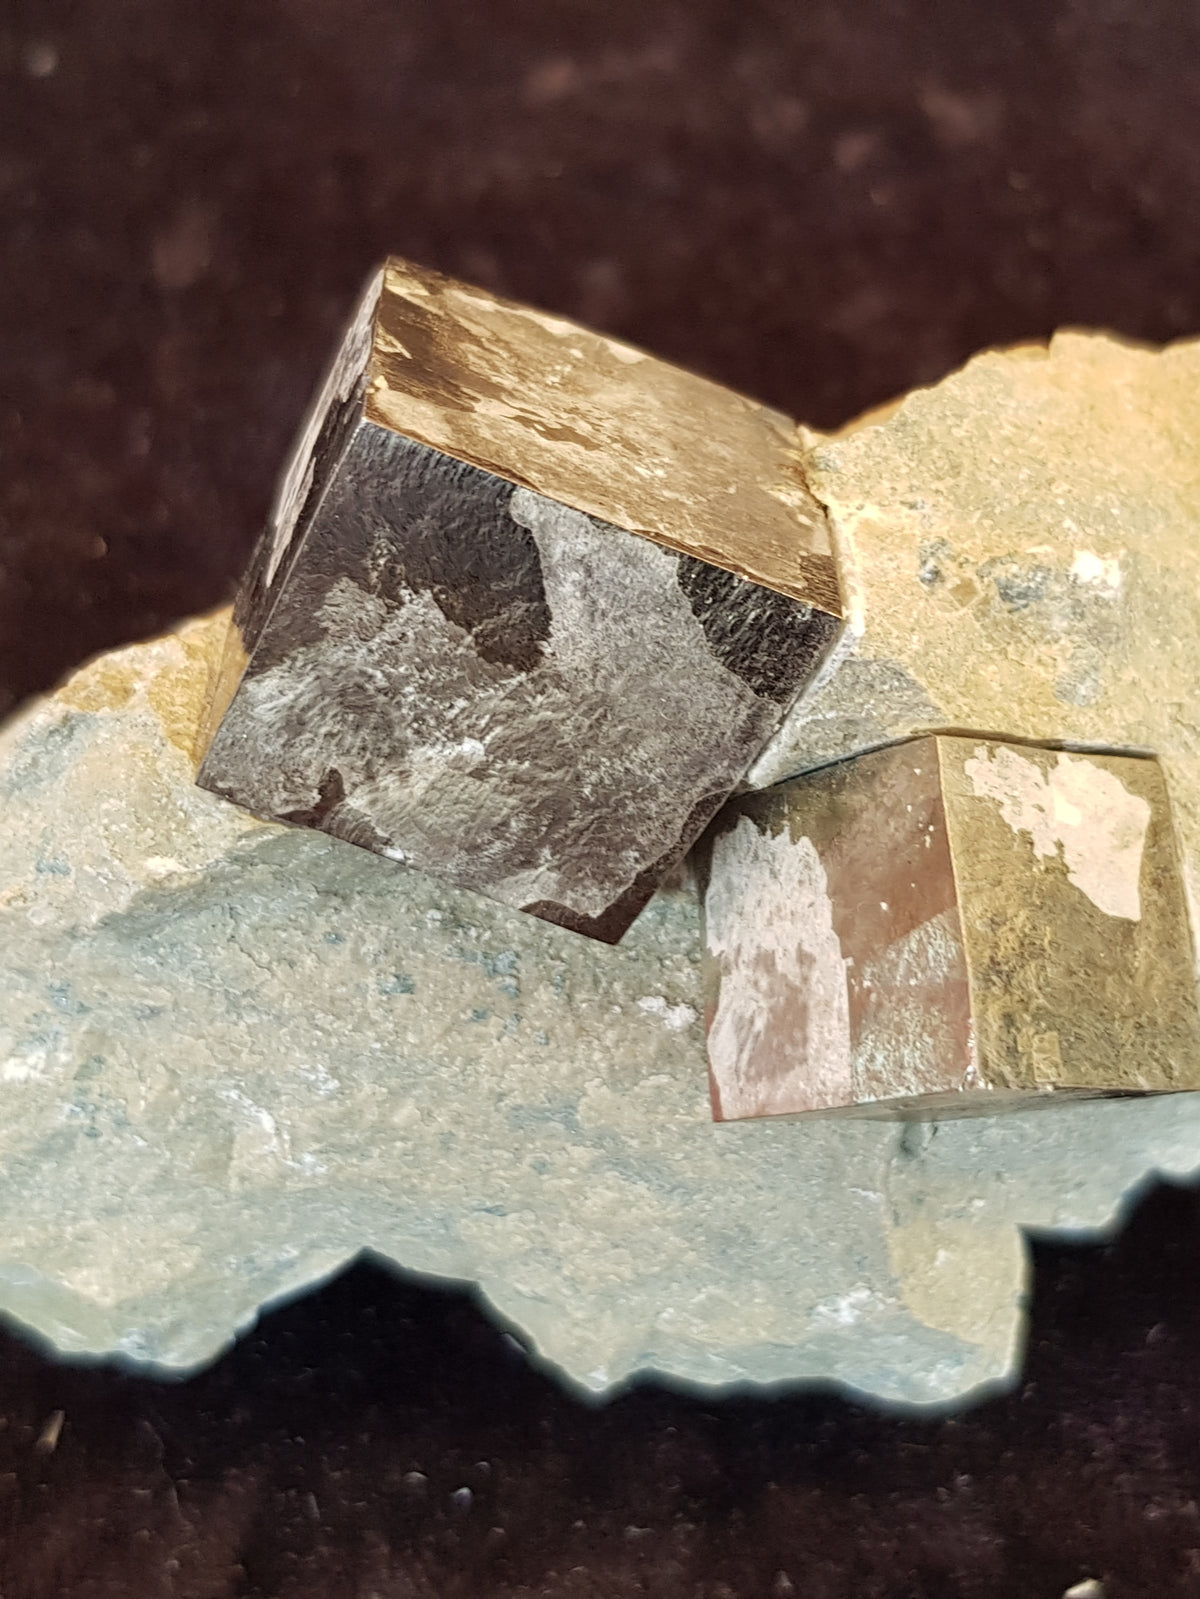 Iron pyrite crystals in marl - The Science of Magic